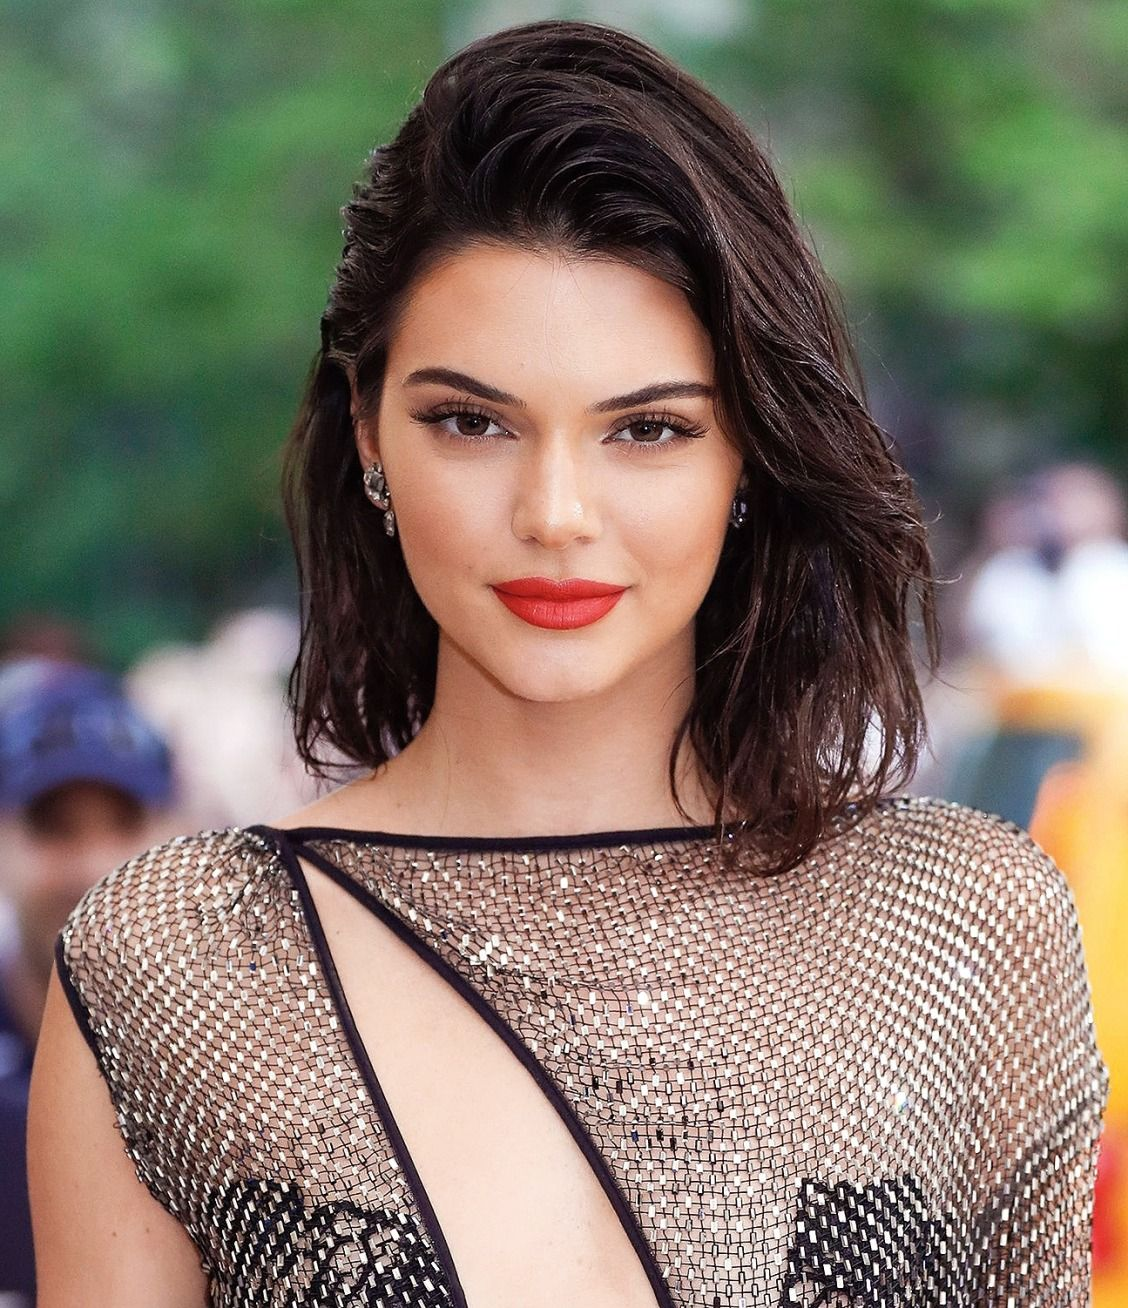 Buy The Exact Red Lipstick Kendall Jenner Wore To The Met Gala